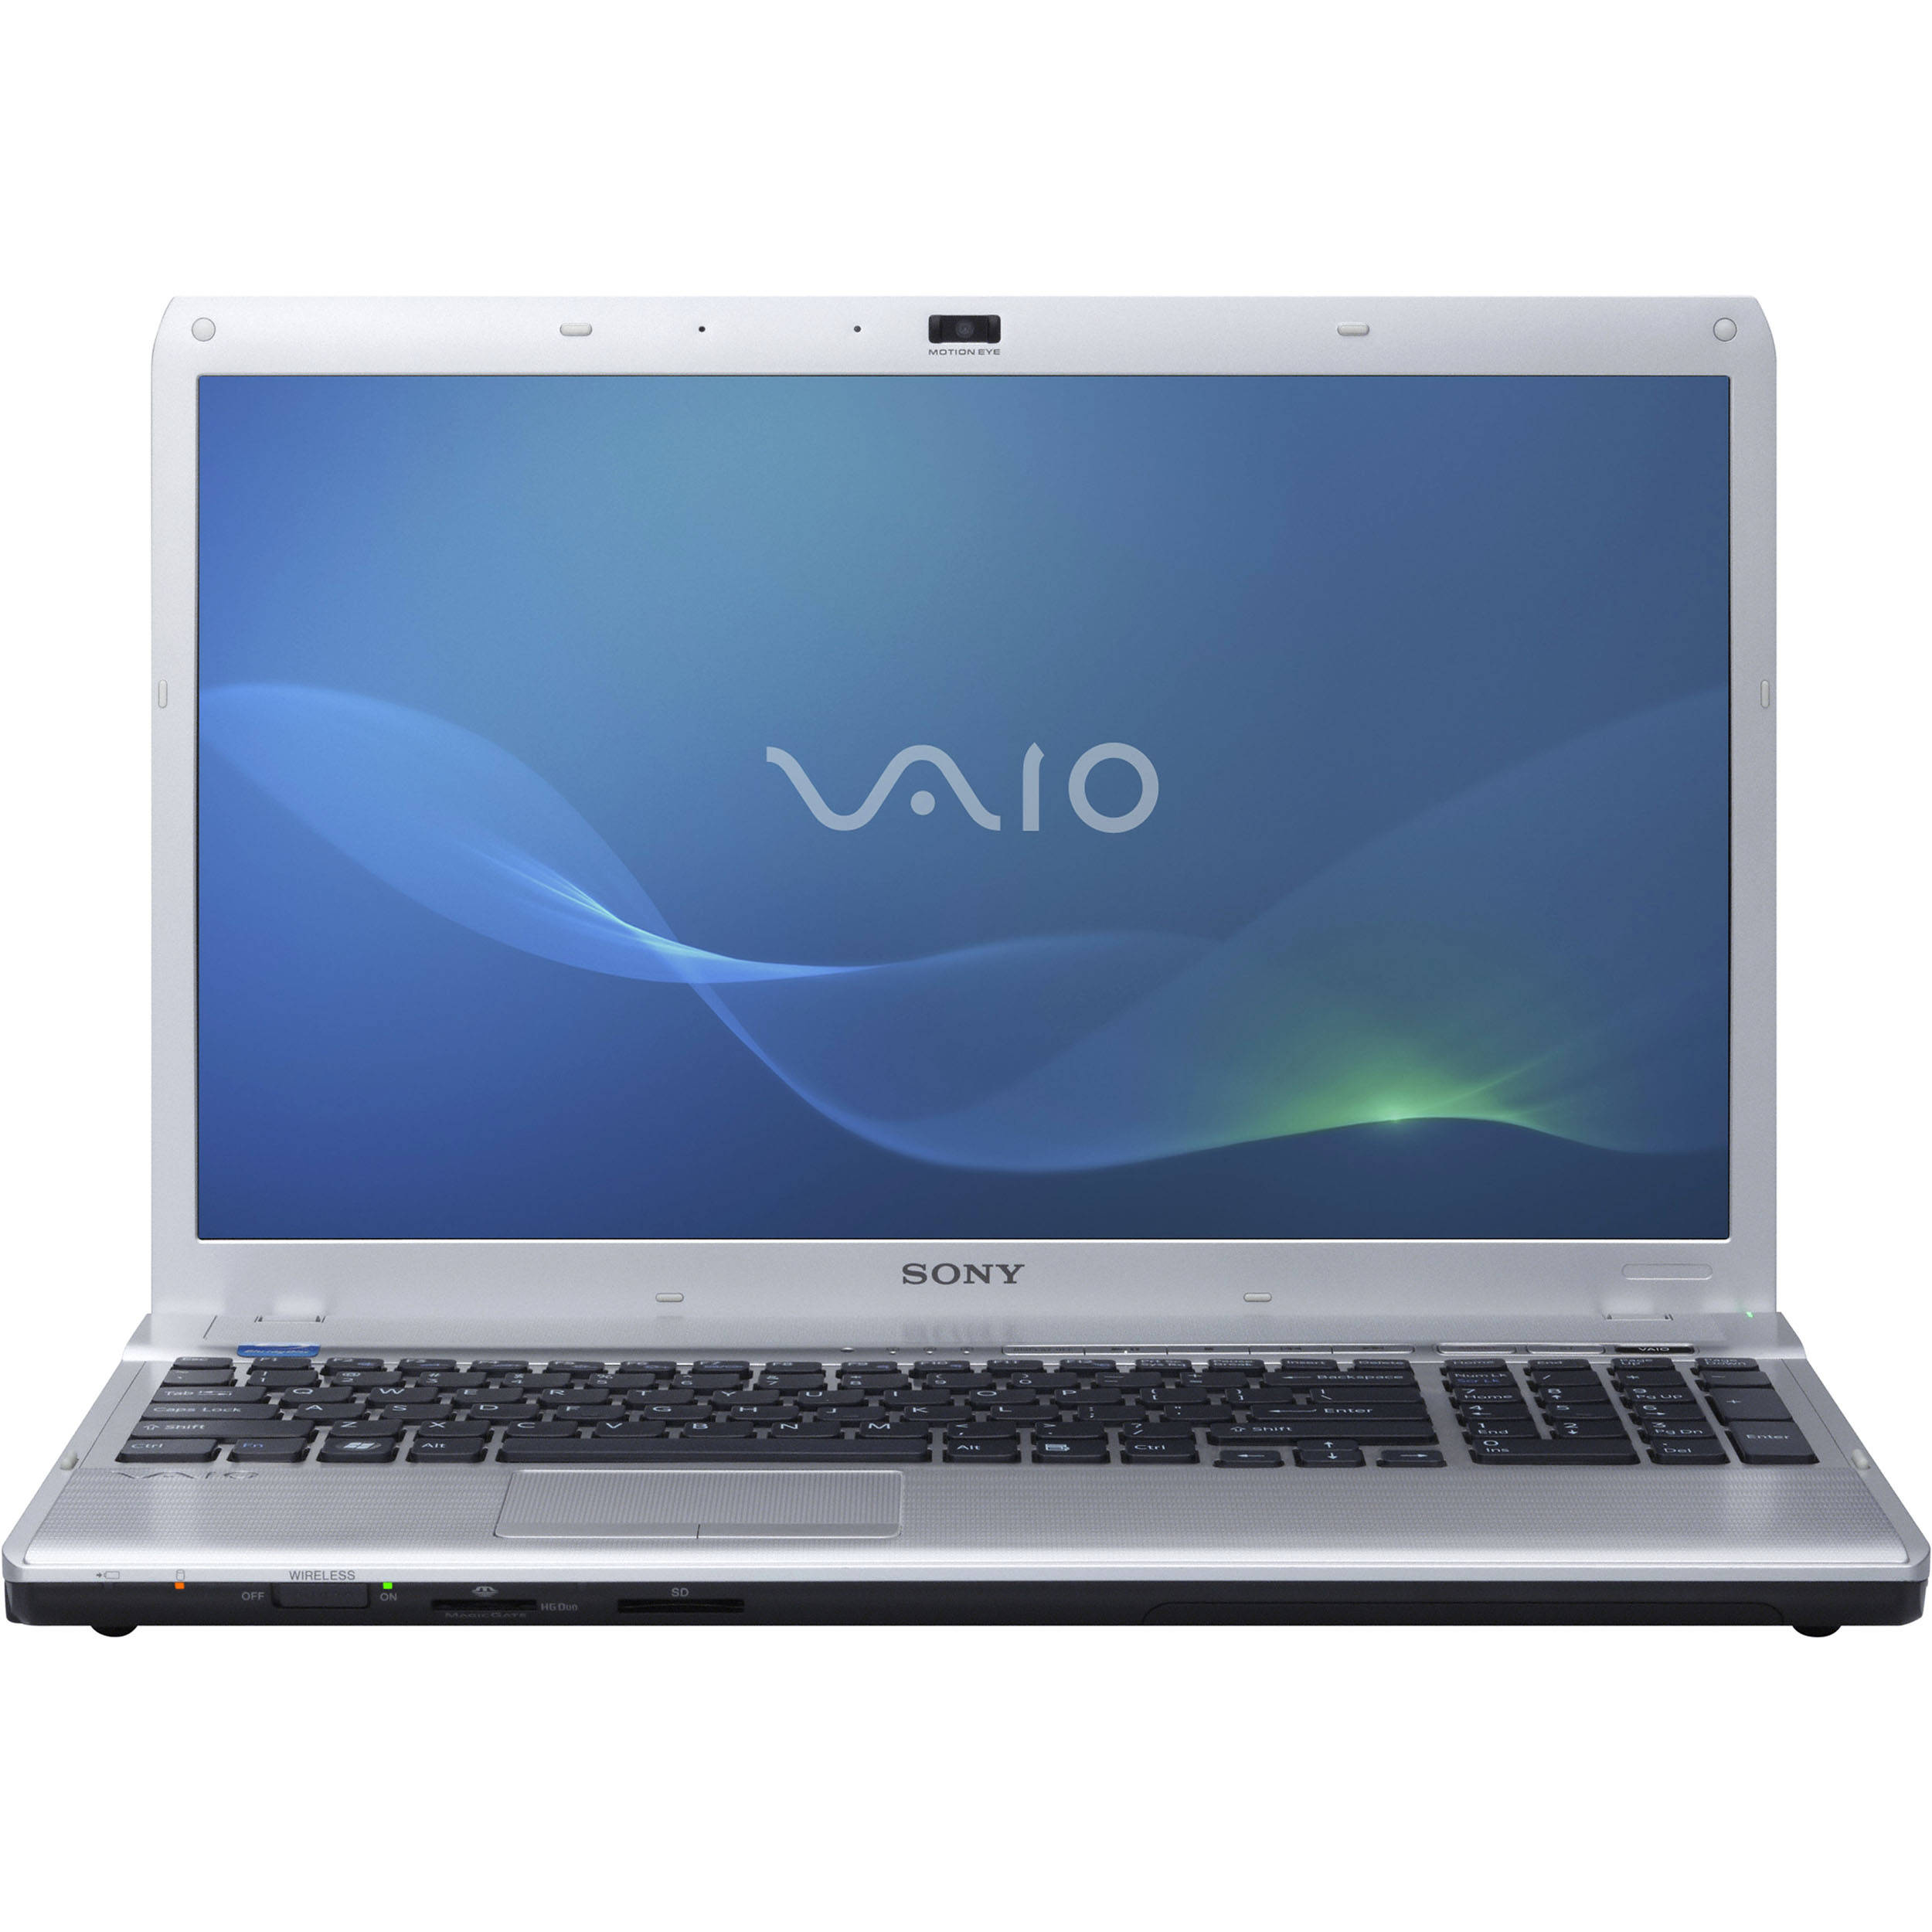 Sony Vaio VPCF137FX/H Notebook Drivers for Windows 7